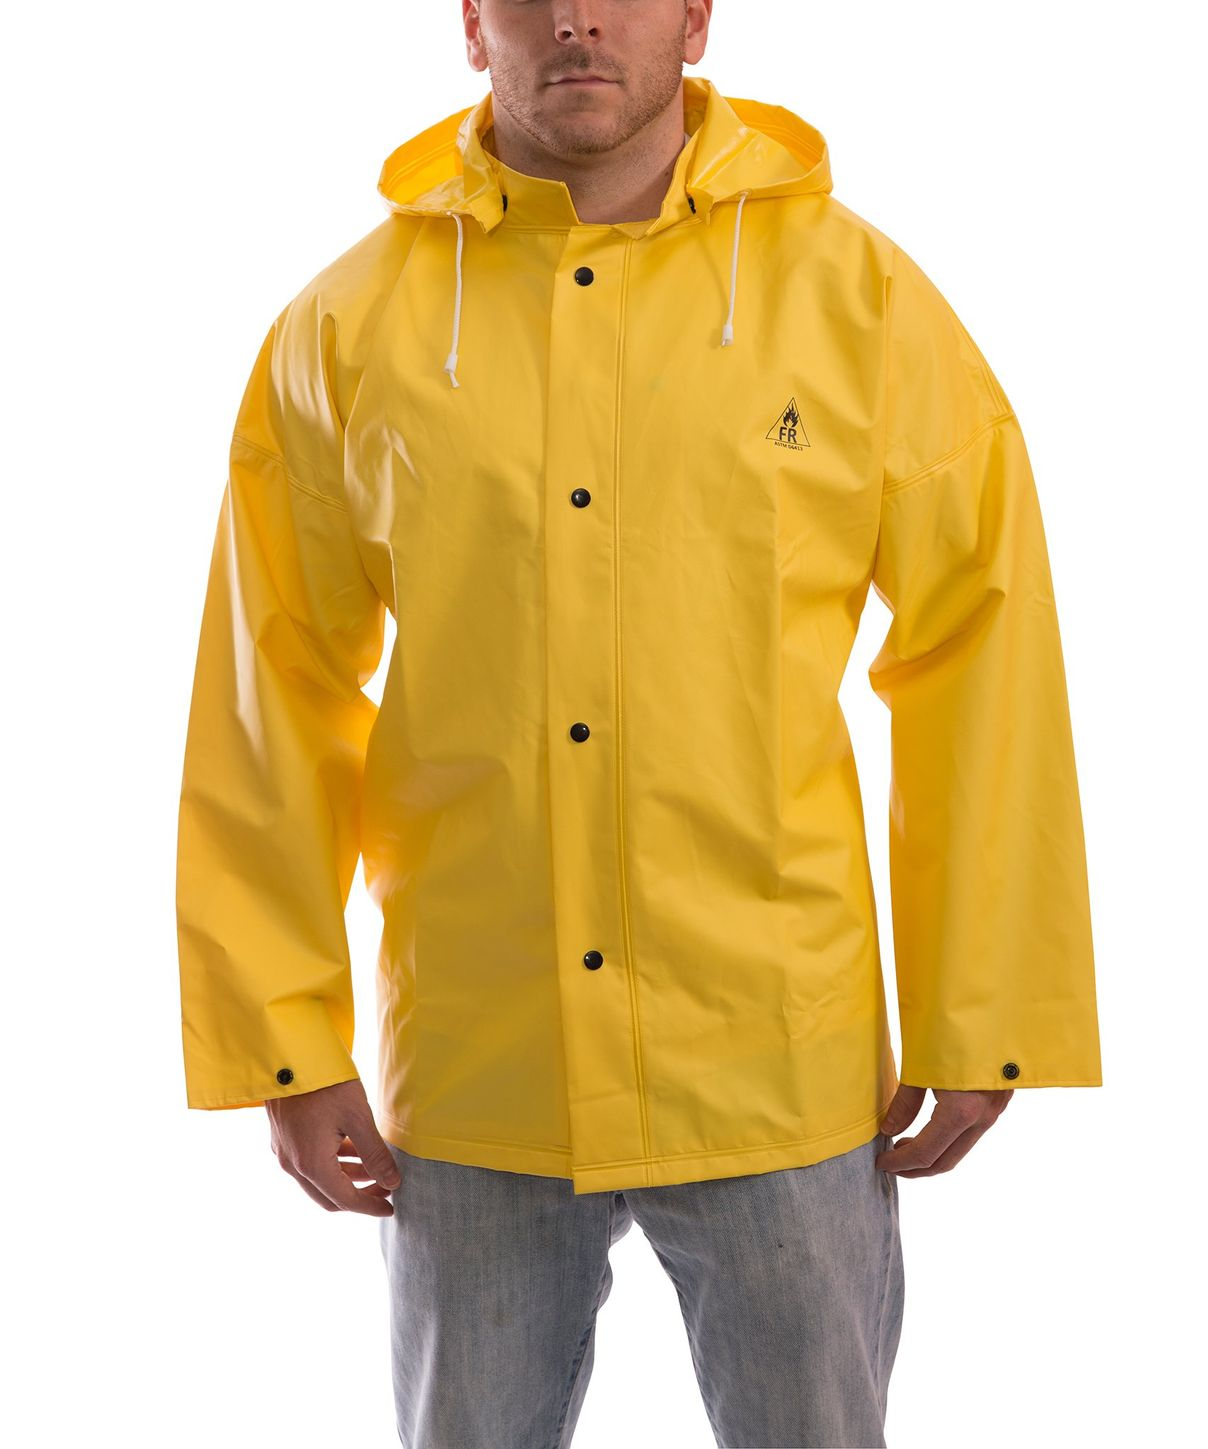 tingley-j56207-durascrim-fire-resistant-jacket-pvc-coated-chemical-resistant-with-hood-snaps-front.jpg